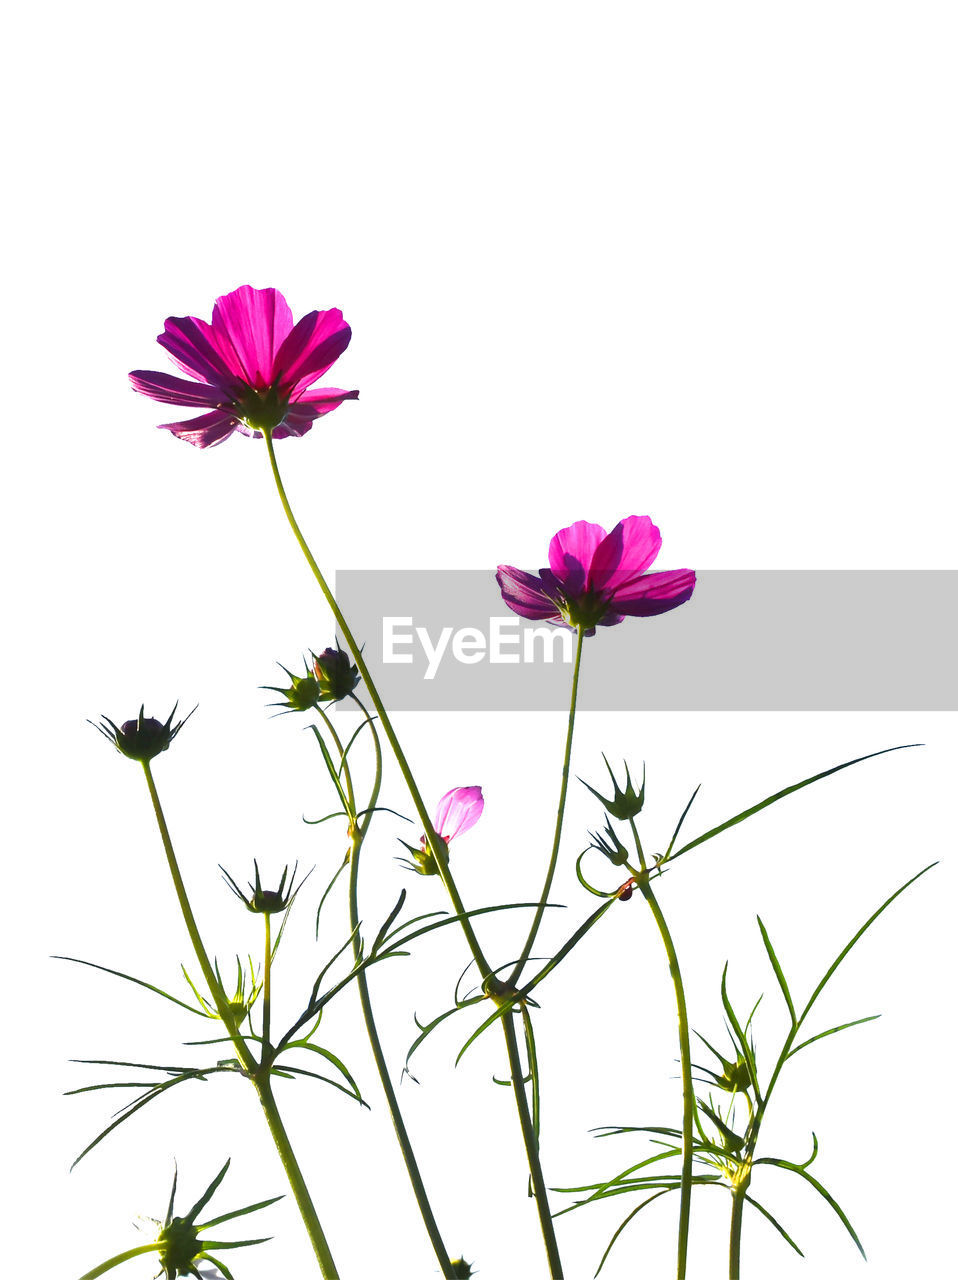 flower, white background, petal, freshness, studio shot, growth, no people, beauty in nature, nature, pink color, cosmos flower, fragility, plant, flower head, close-up, clear sky, day, outdoors